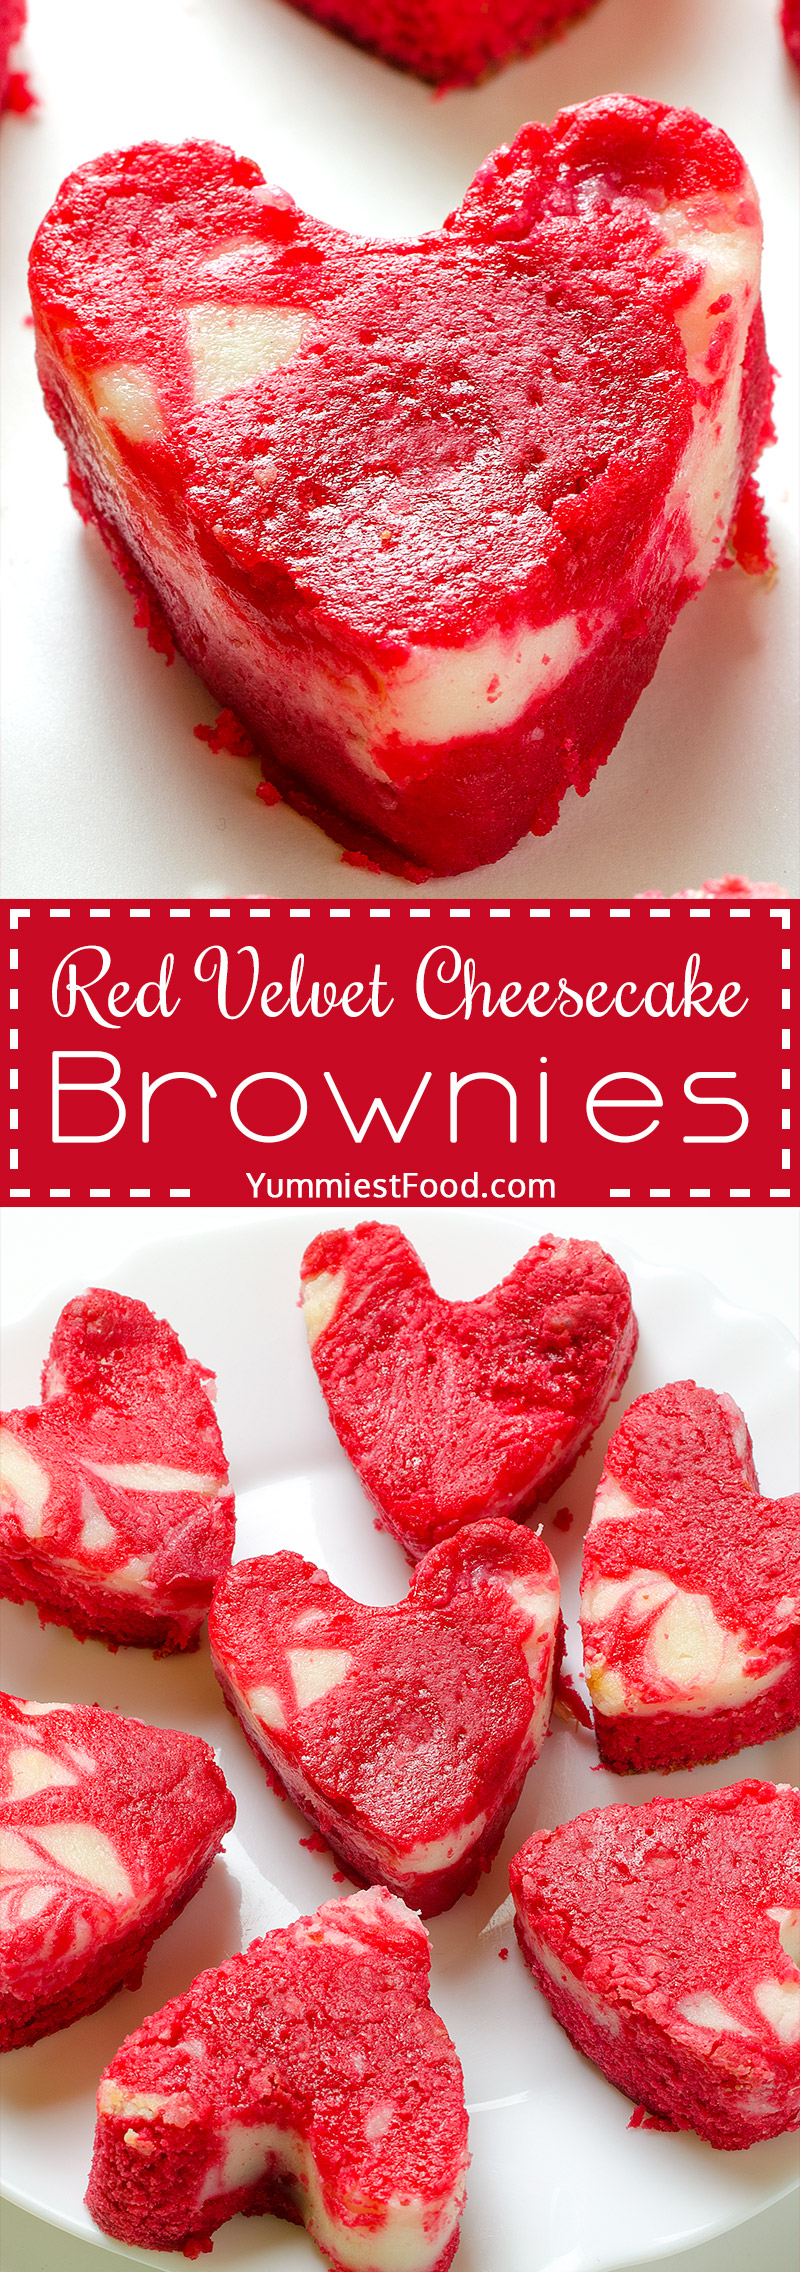 So tasty and creative Valentine's Red Velvet Cheesecake Brownies - the perfect dessert for Valentine's Day.